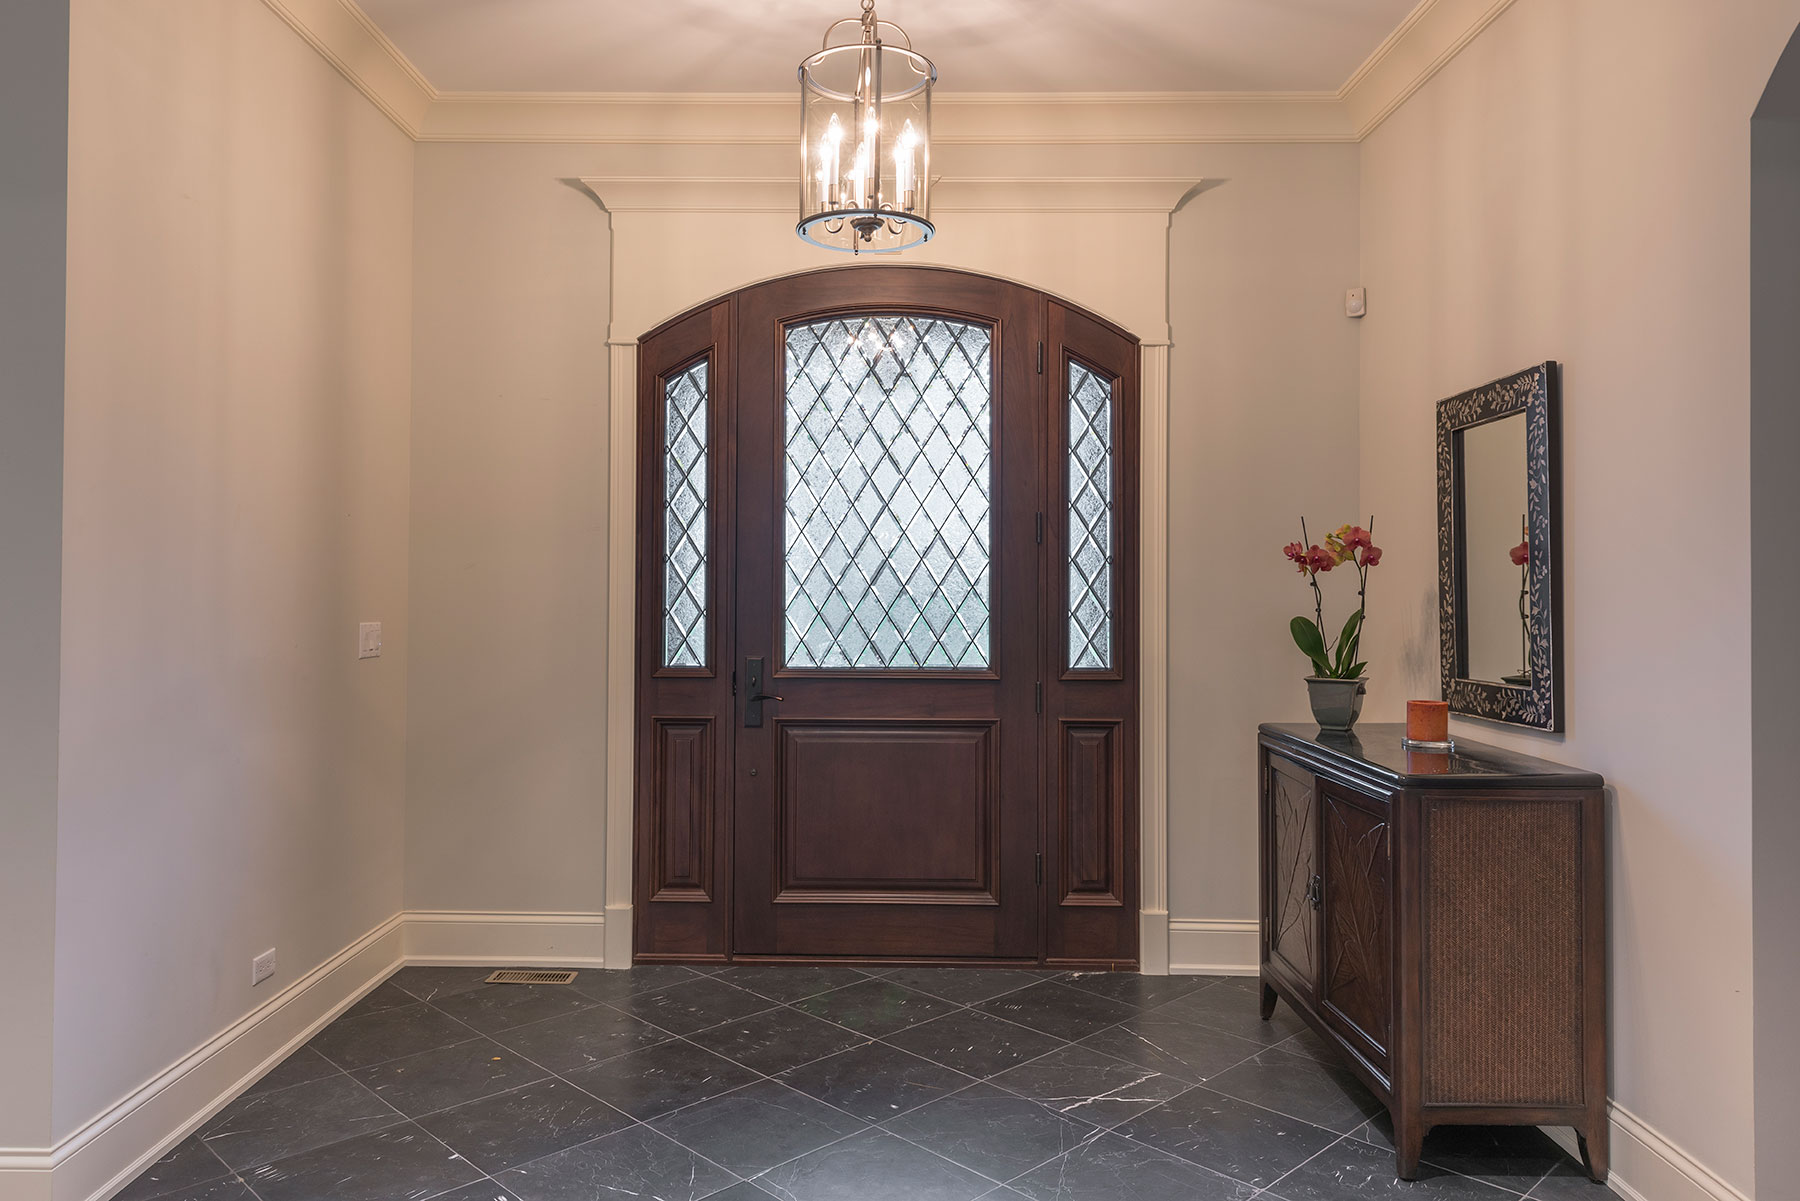 Custom Wood Front Entry Doors | solid wood mahogany door with sidelites, privacy glass, dark finish DB-552WDG 2SL - Glenview Doors - Custom Doors in Chicago